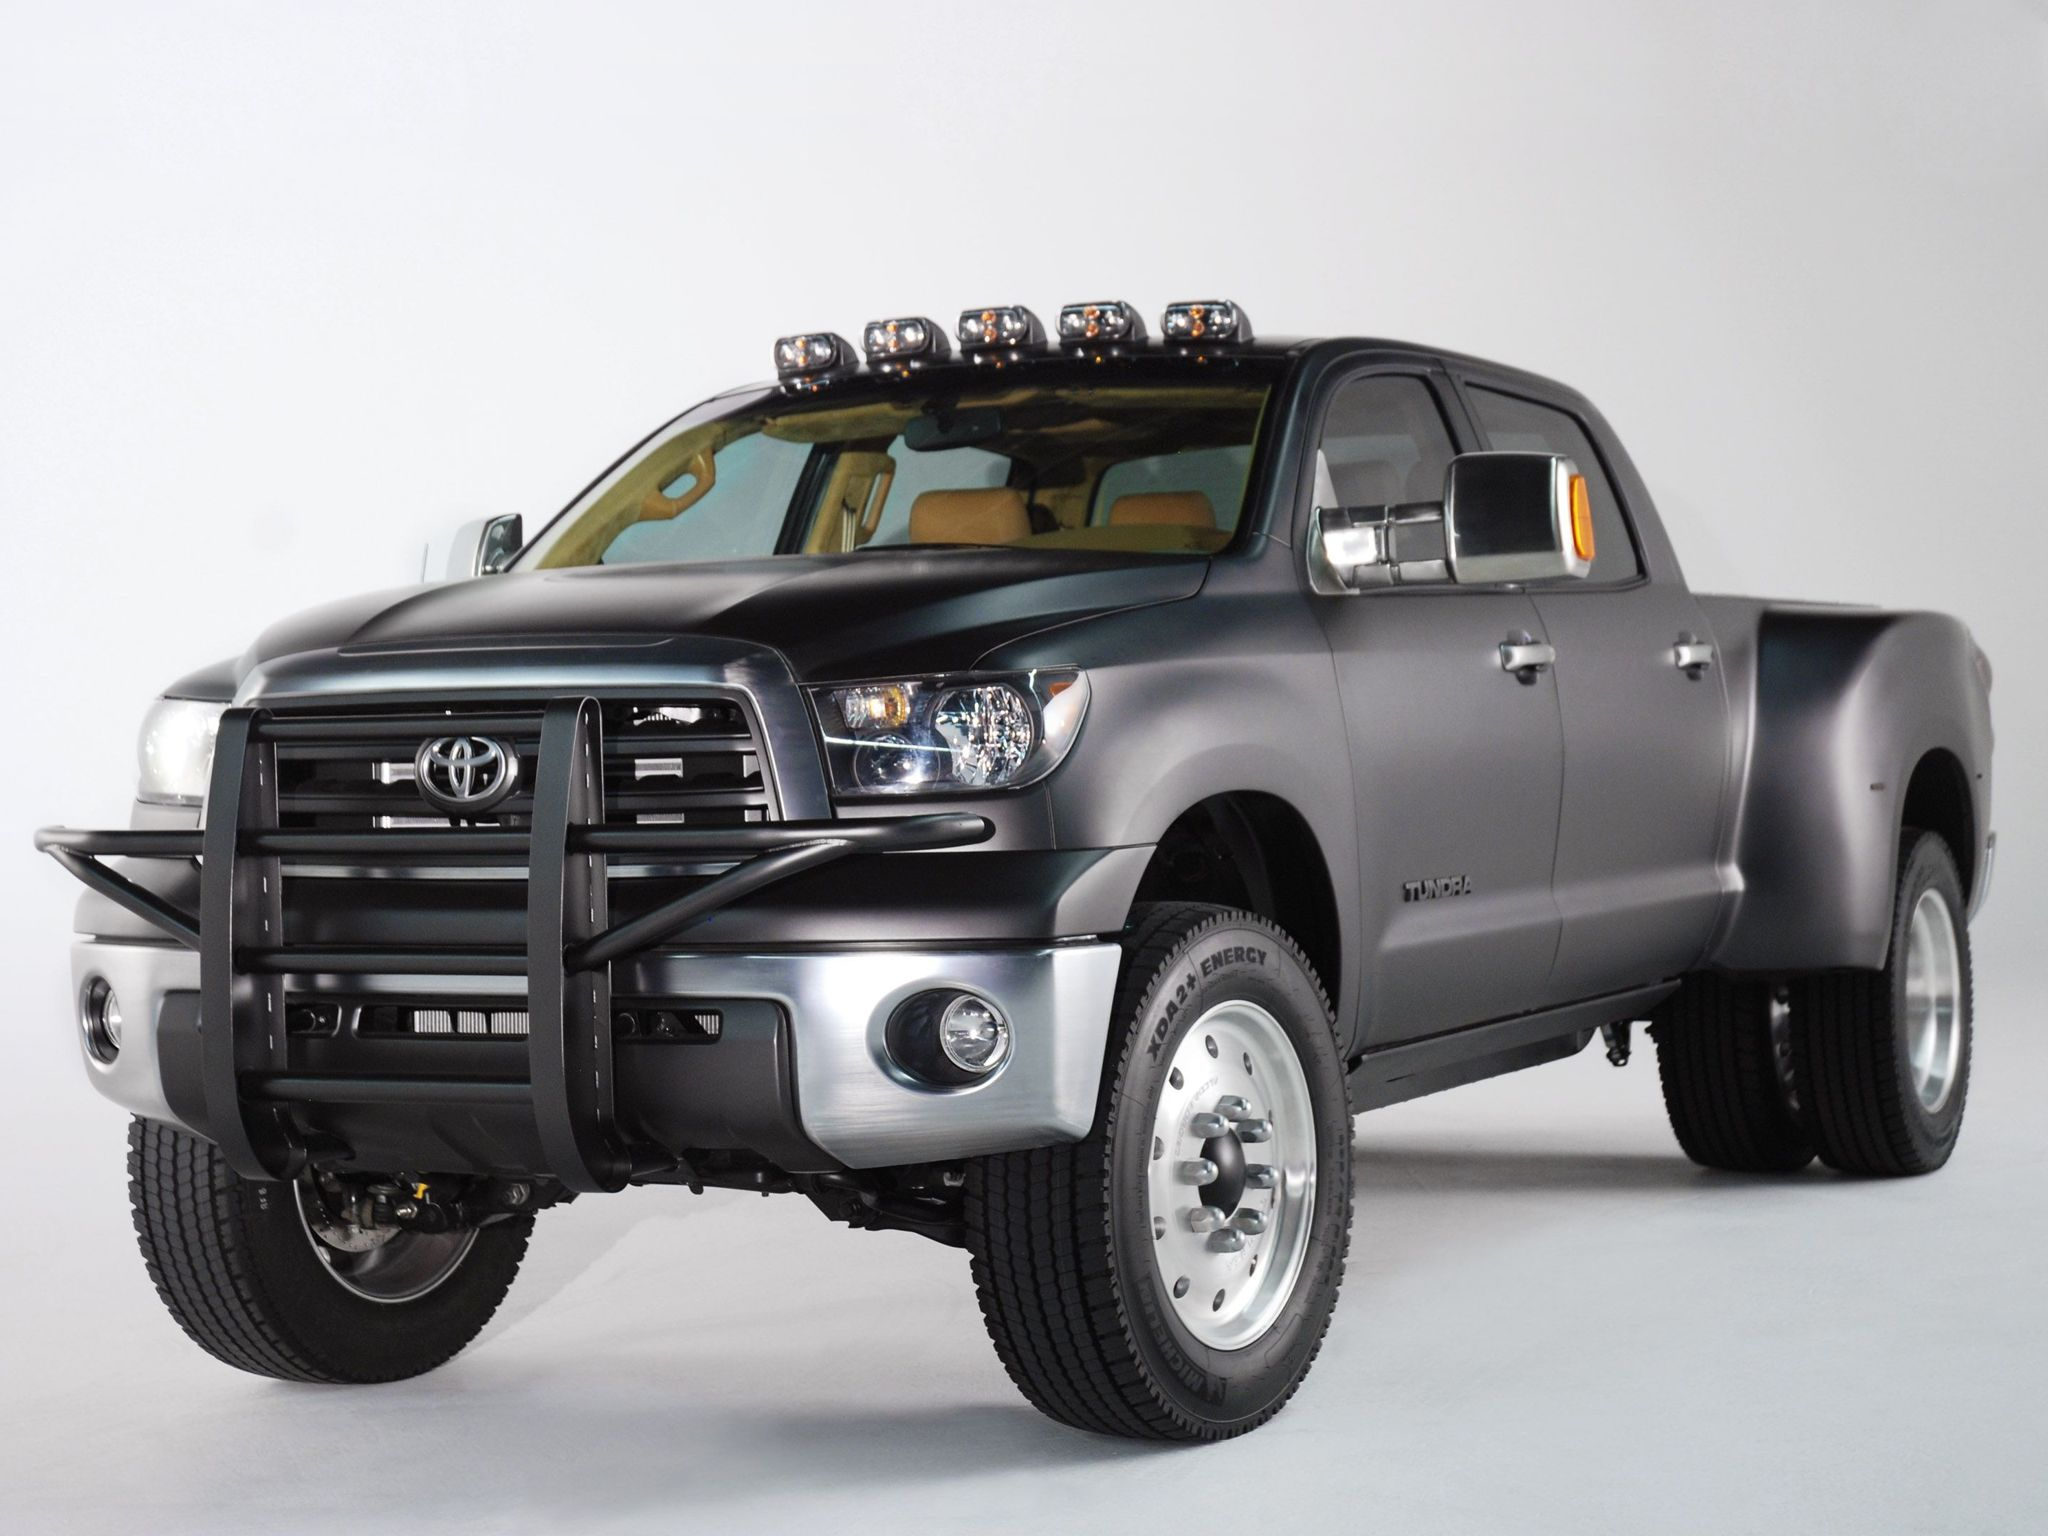 Toyota Tundra Dually Diesel Concept the iest truck